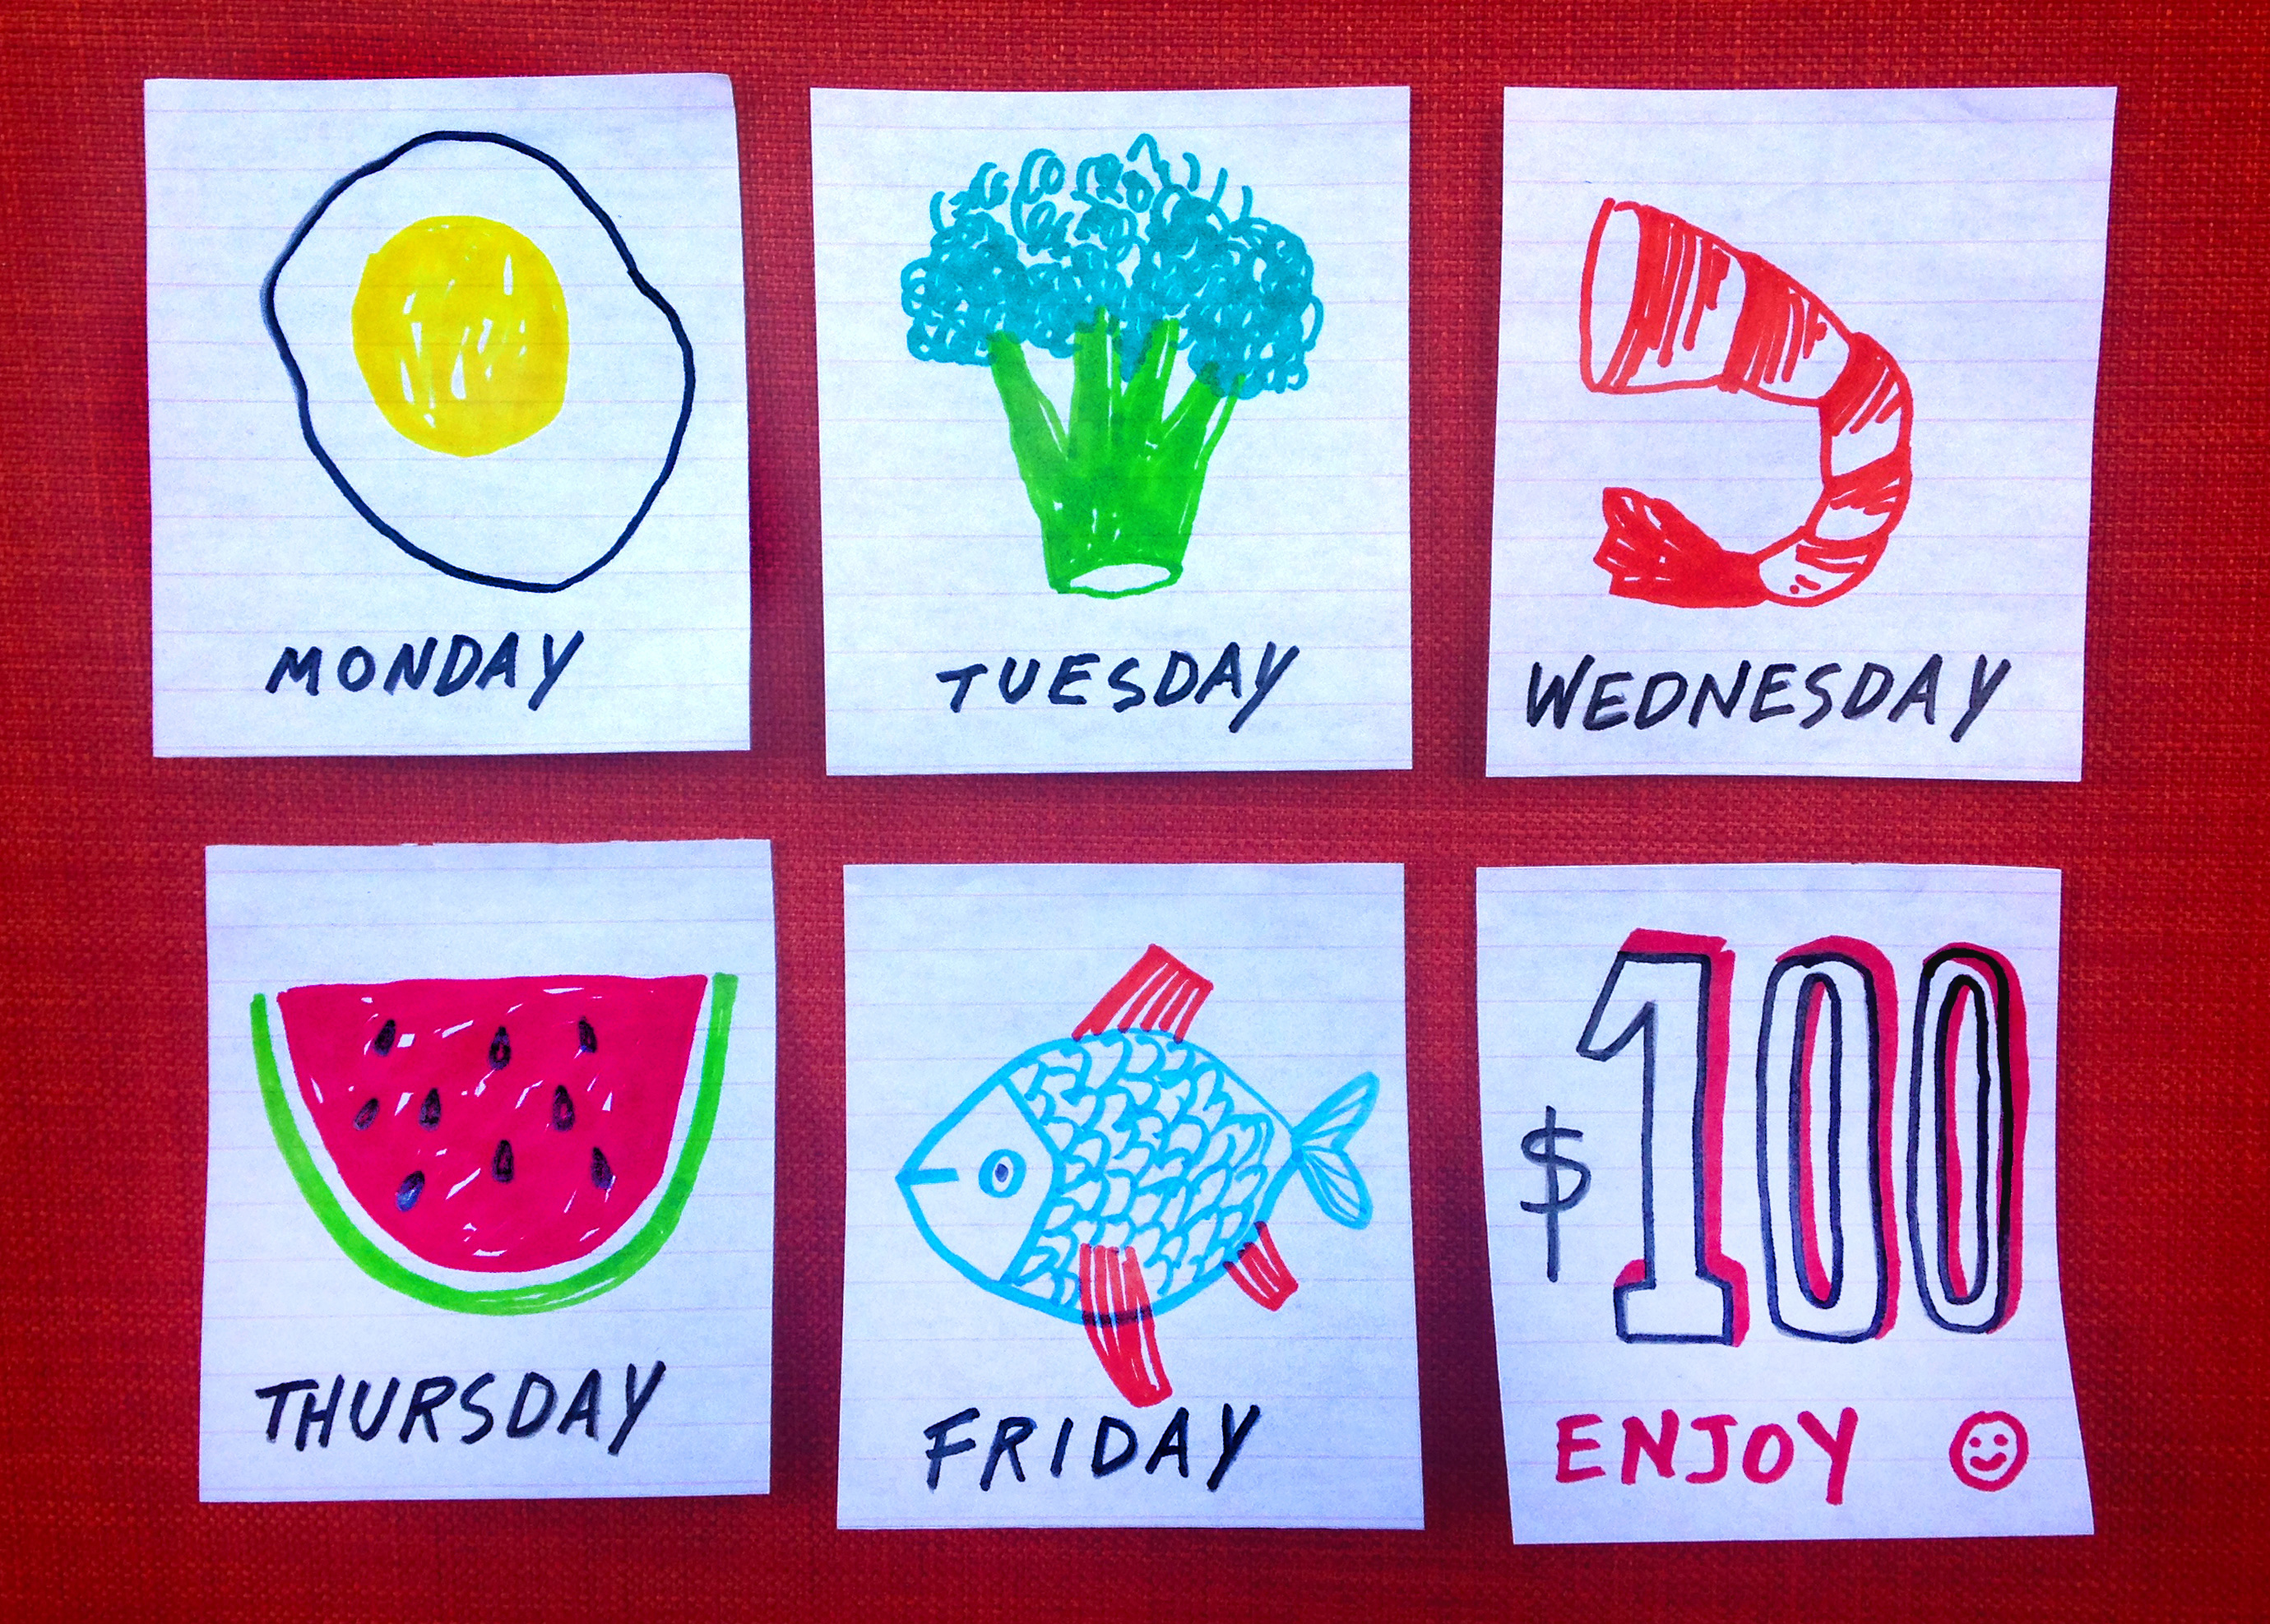 Illustration shows a different food for each day of the week. Monday: egg. Tuesday: broccoli. Wednesday: shrimp. Thursday: watermelon. Friday: fish.